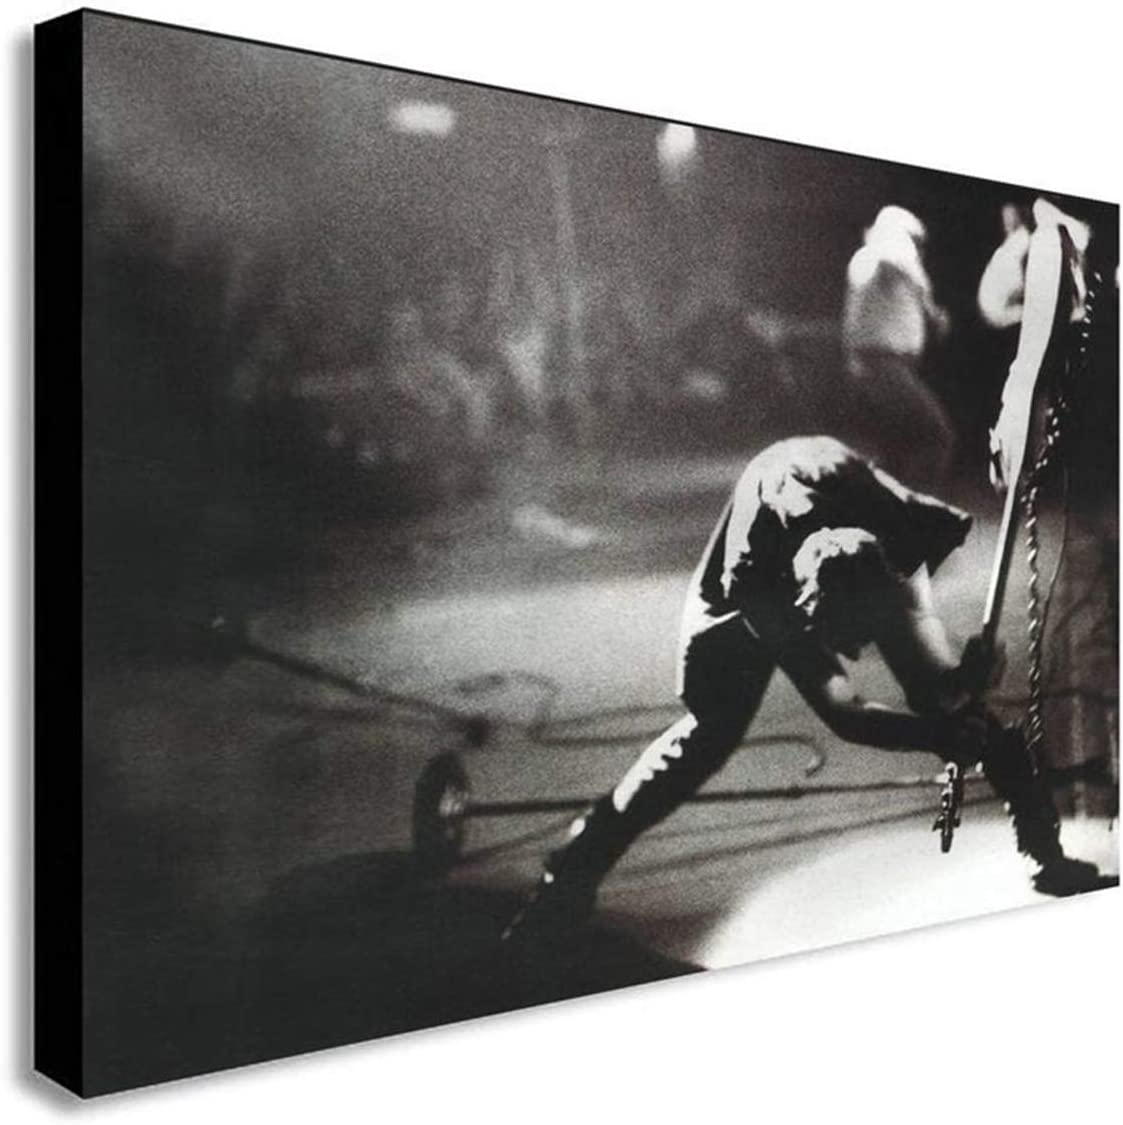 DOLUDO Canvas Wall Art The Clash London Posters Painting Home Decor Artwork for Living Room Bed Room Wall Decoration No Frame 12x20inch